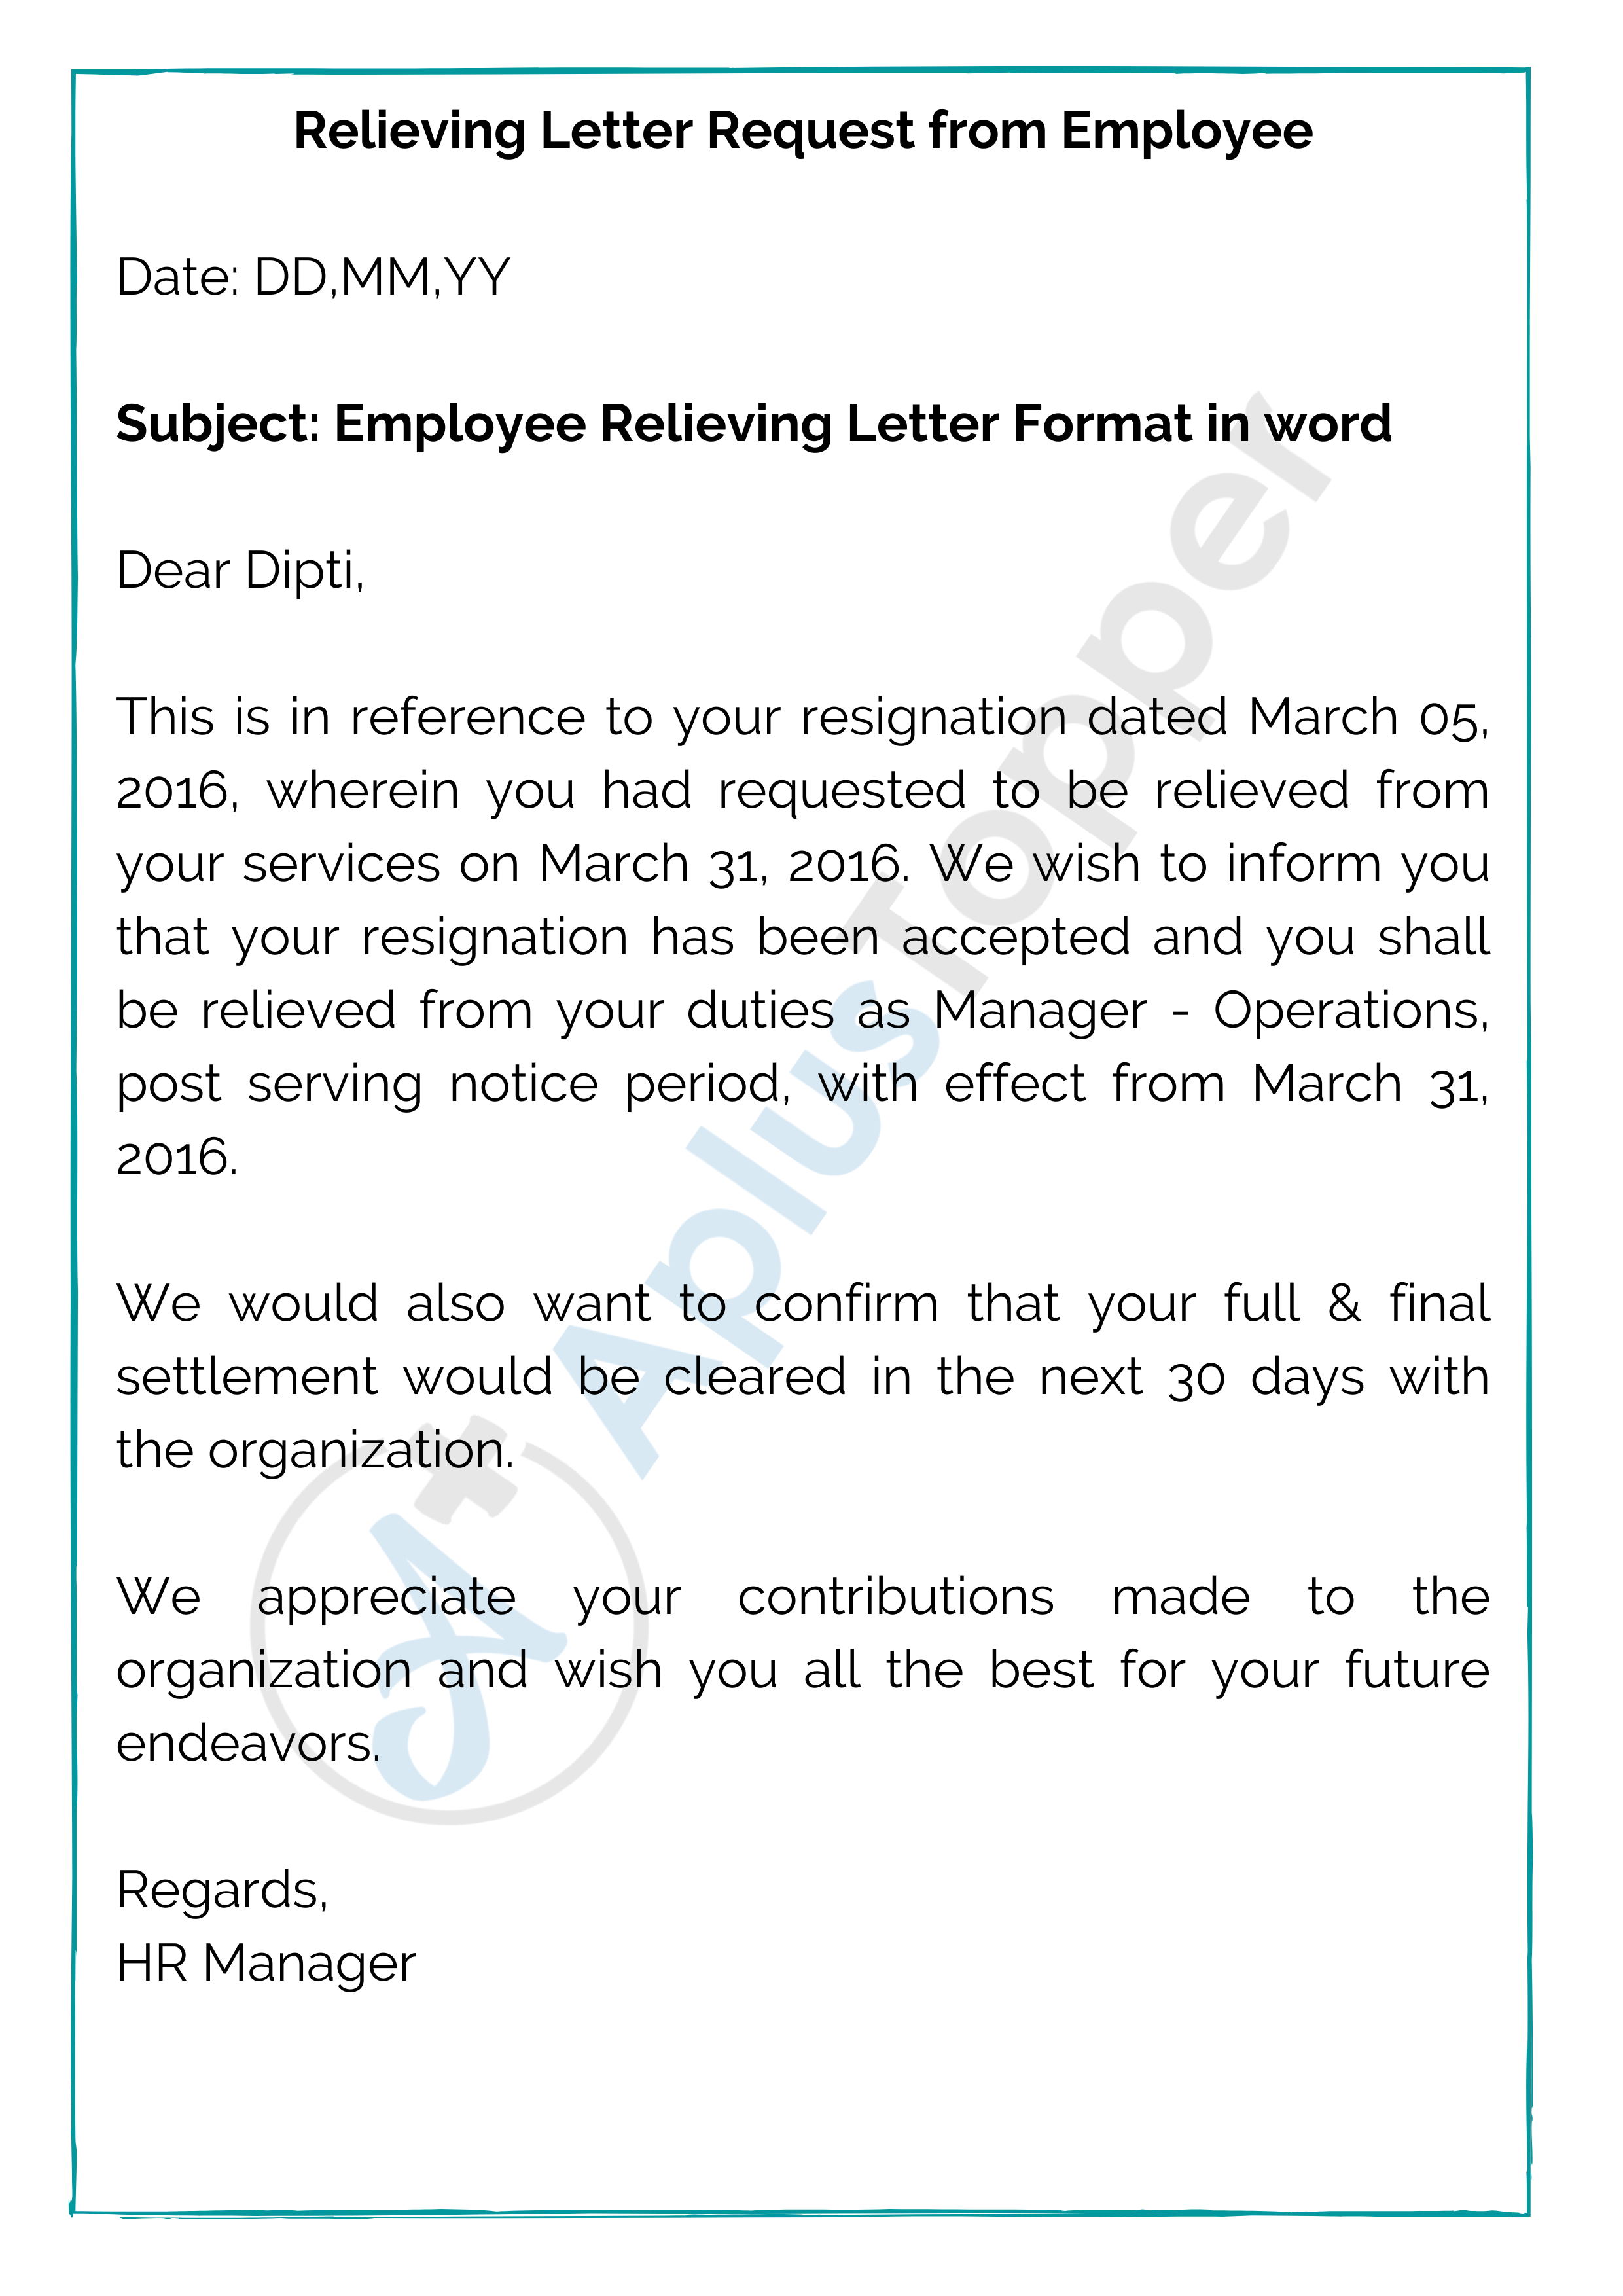 Relieving Letter Request from Employee